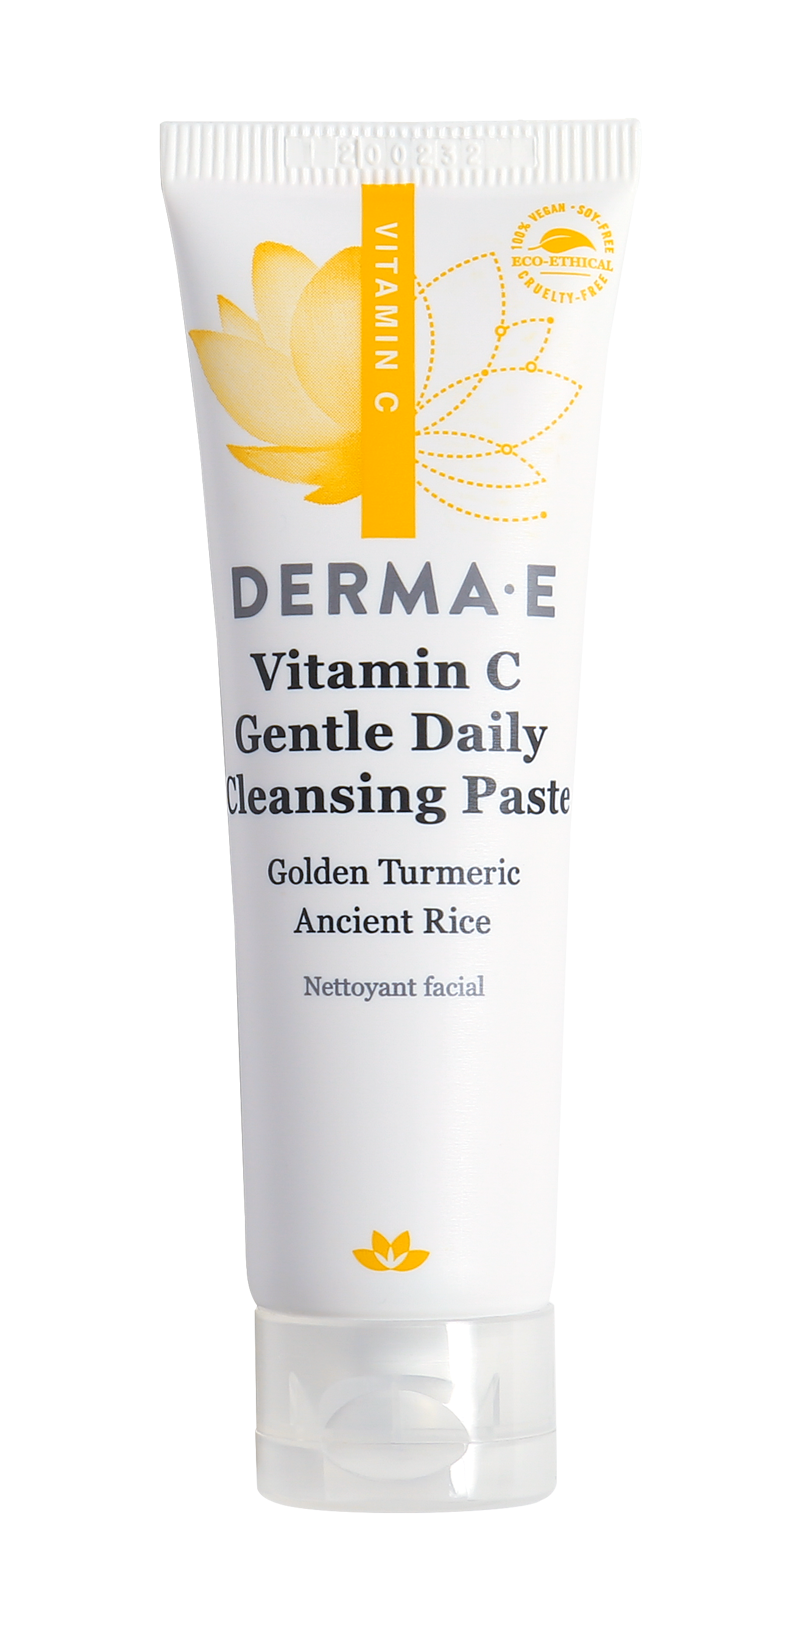 Vitamin C Daily Cleansing Paste Deluxe